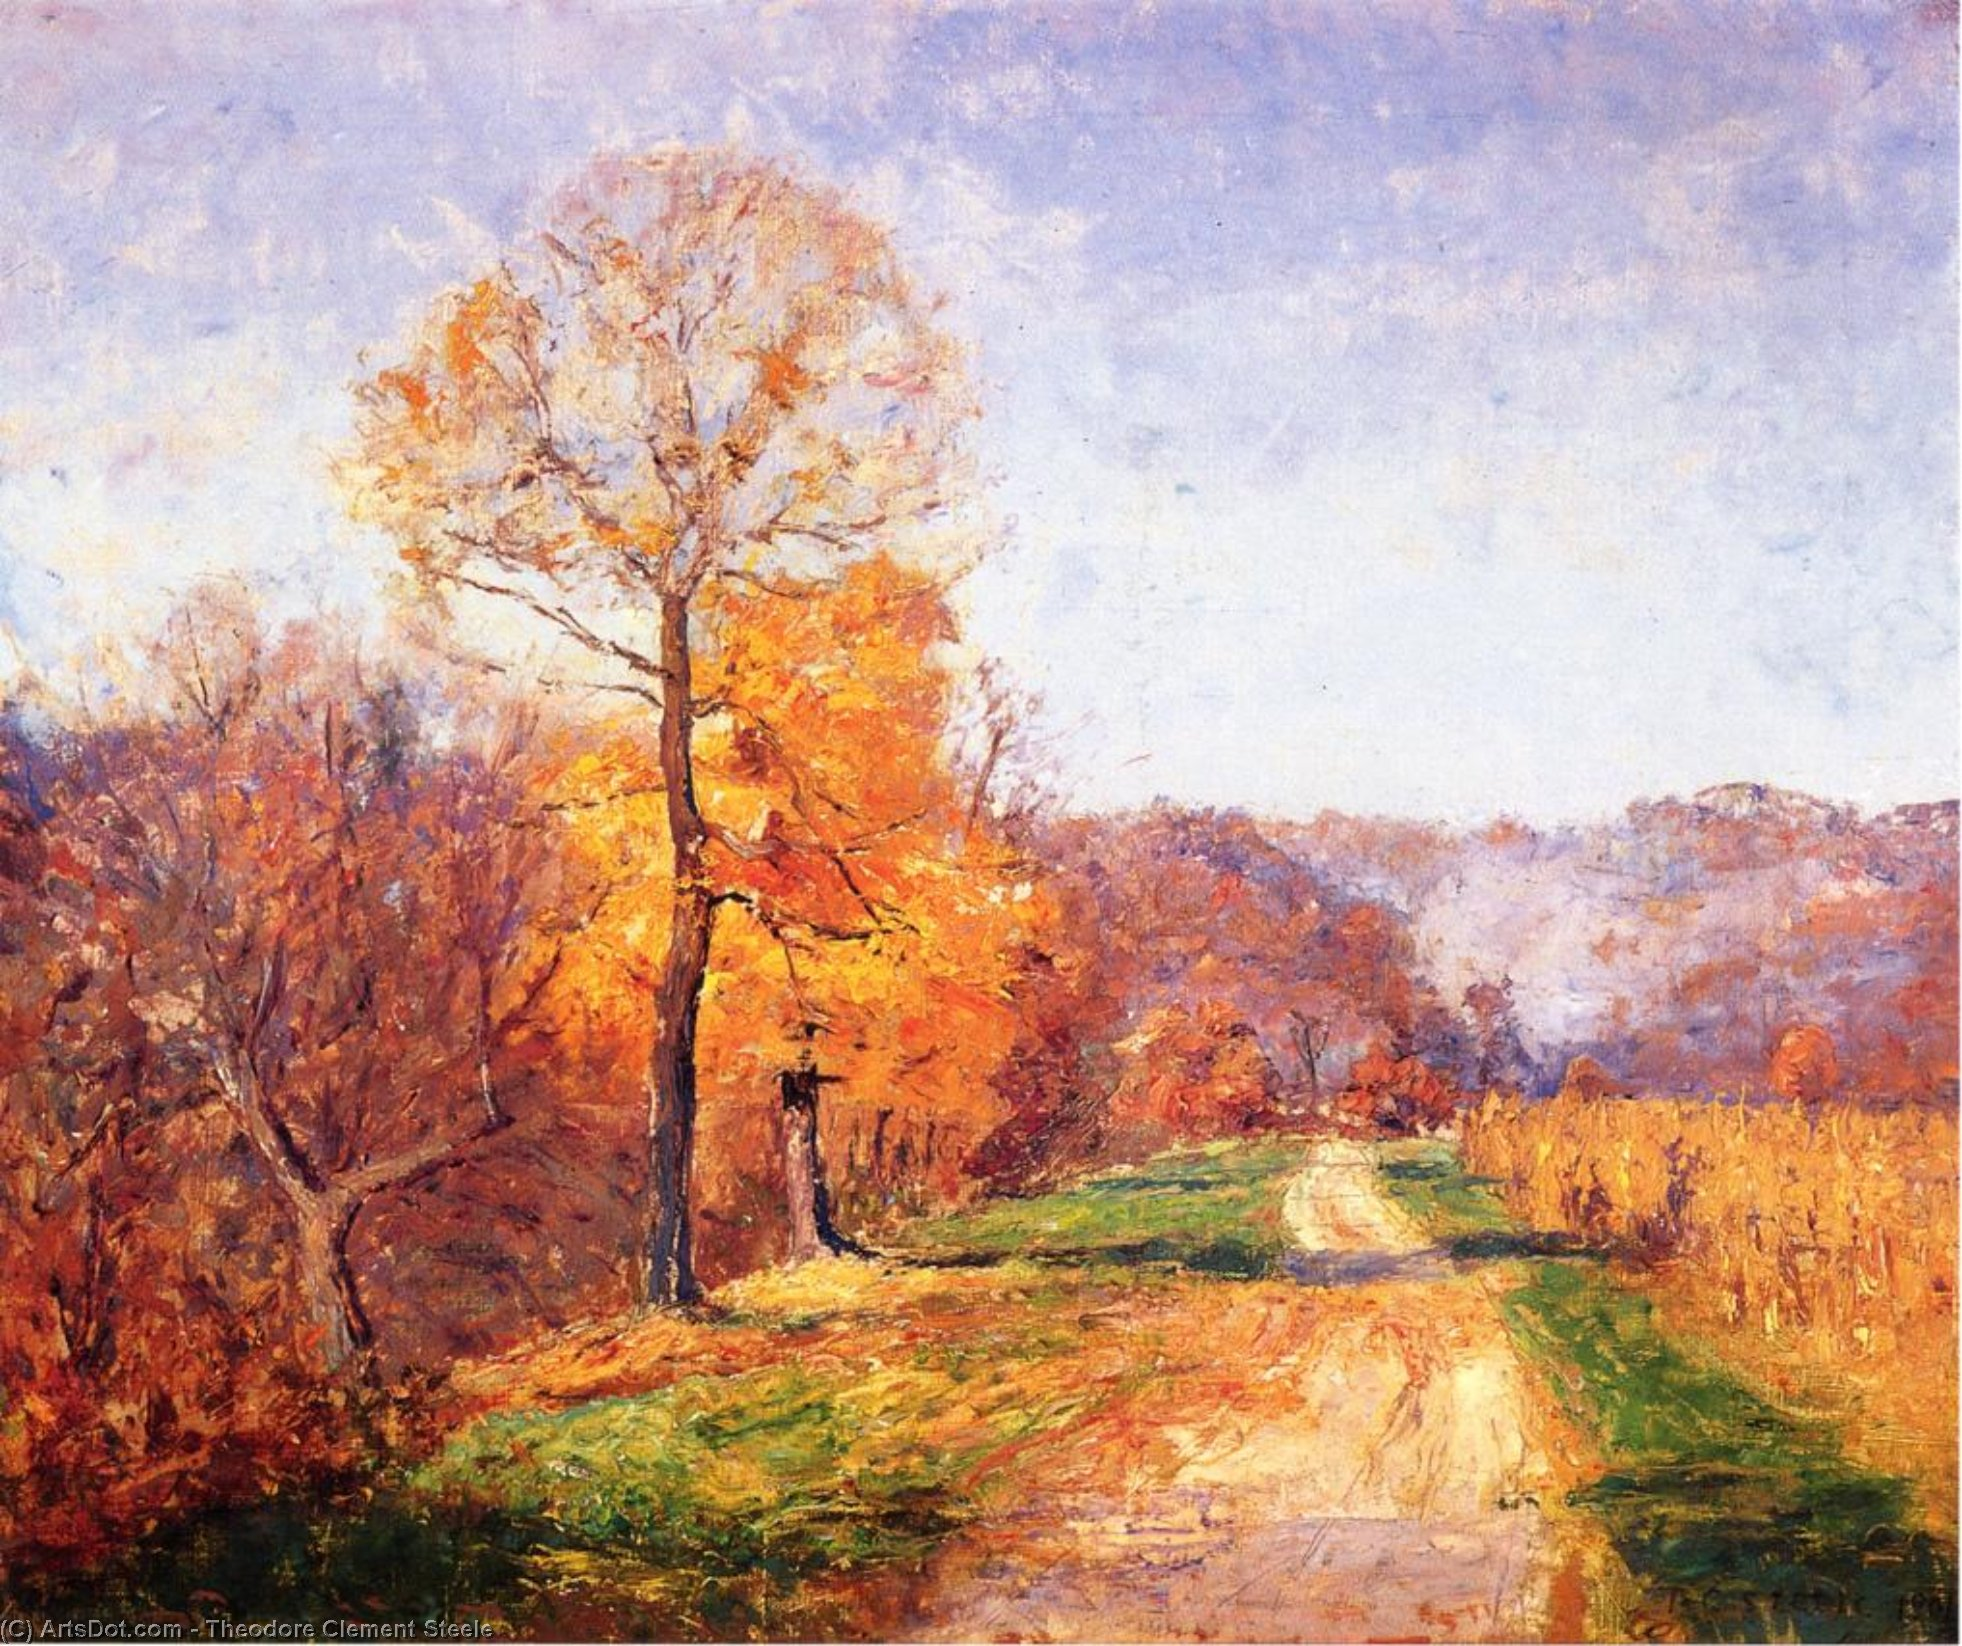 Along a Country Lane by Theodore Clement Steele  (order Fine Art fine art print Theodore Clement Steele)